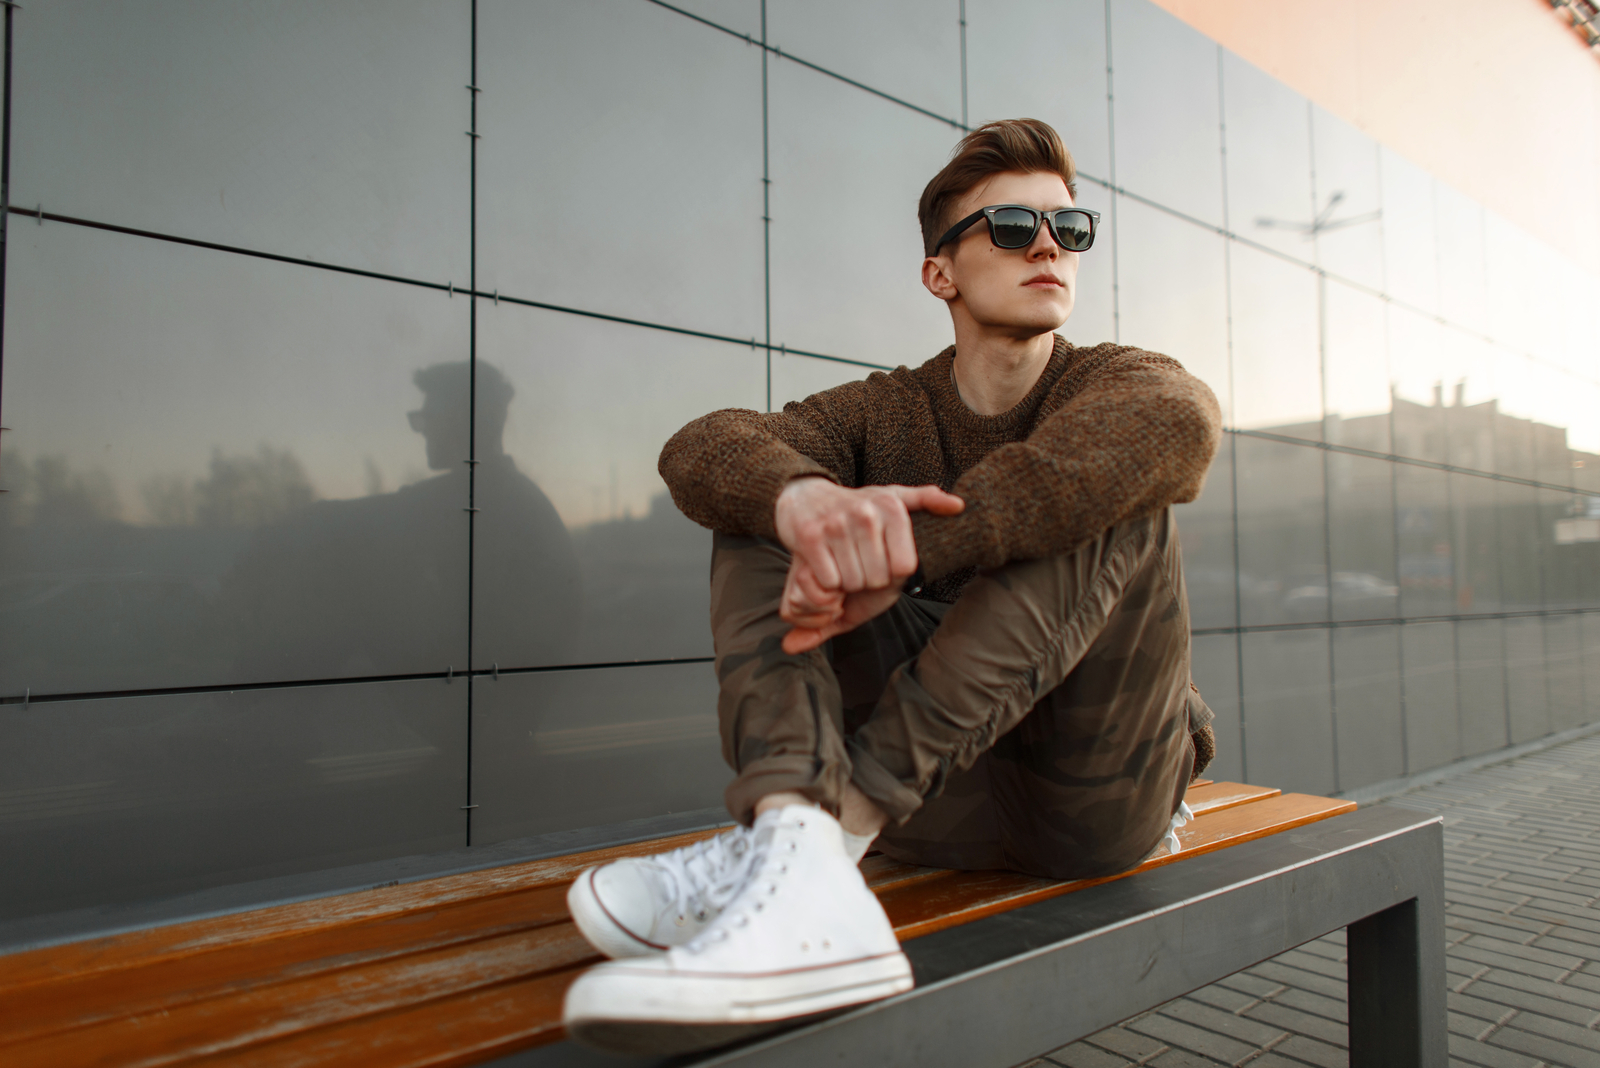 young guy wearing sunglasses